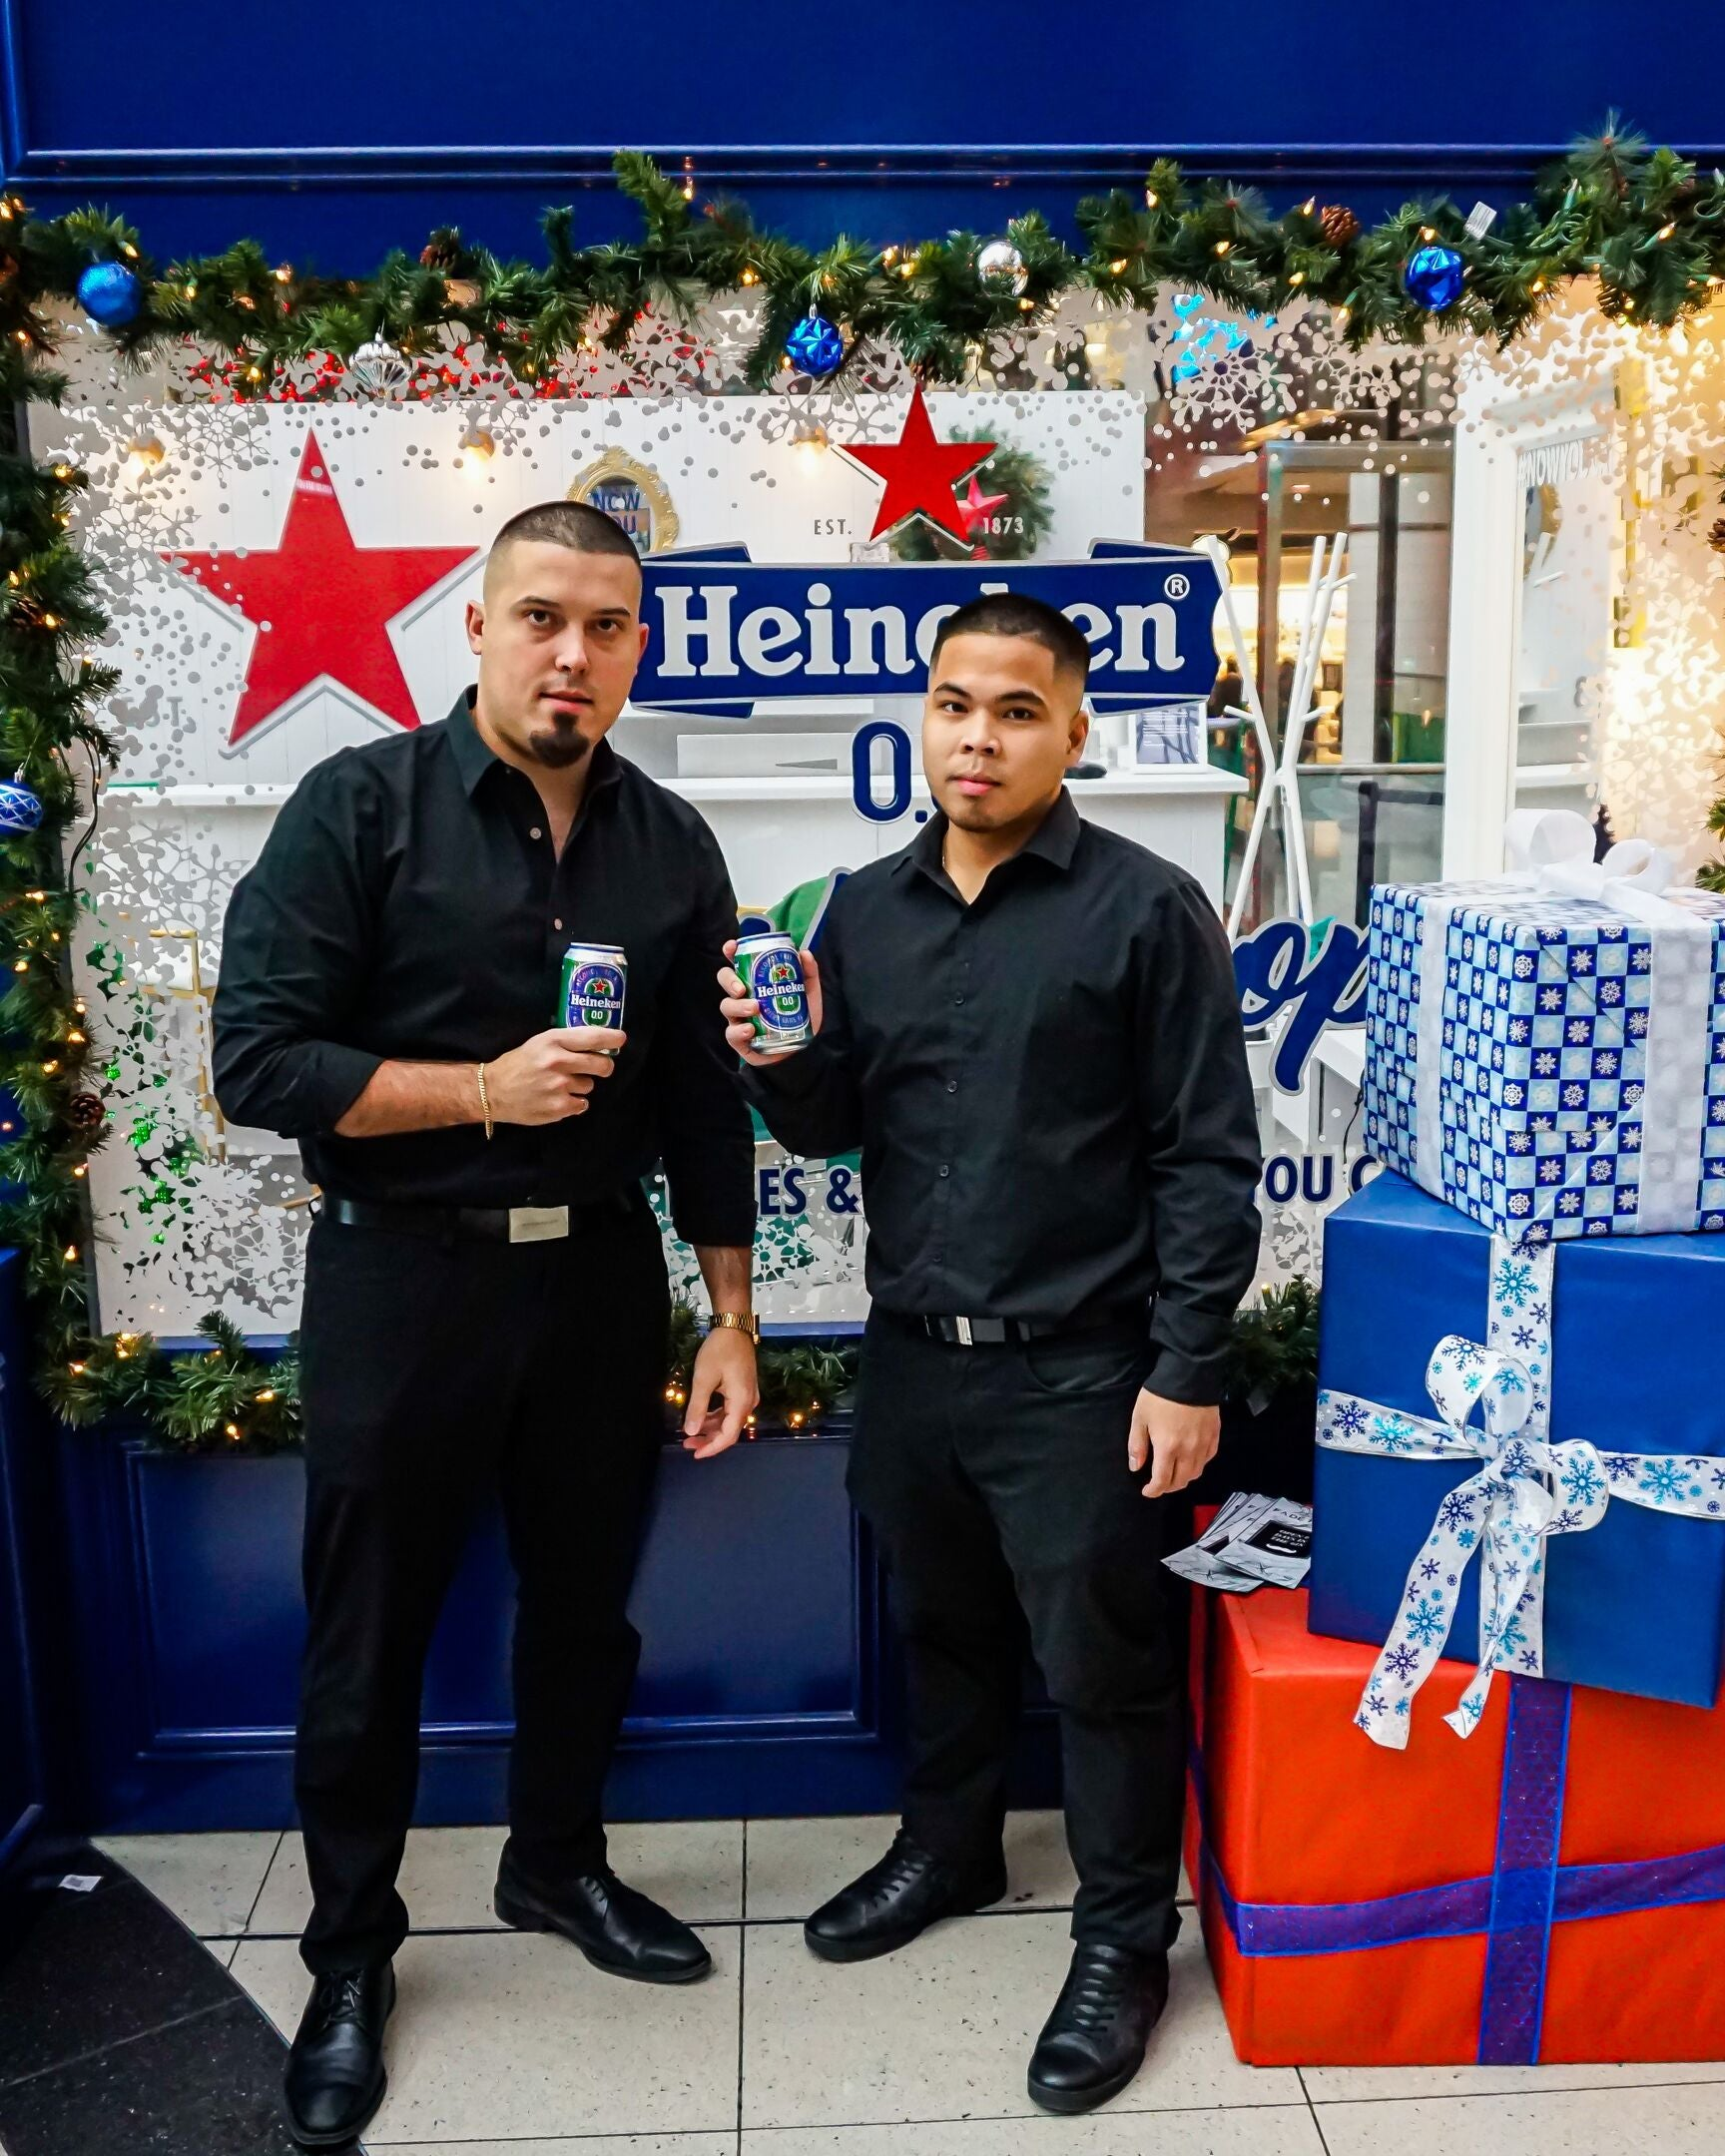 Heineken 0.0 Christmas Holiday Pop-up at Eaton Centre Toronto with Fade Room barbershop. Claudio Ferreira (left), Emmanuel Andrei Climaco (right)